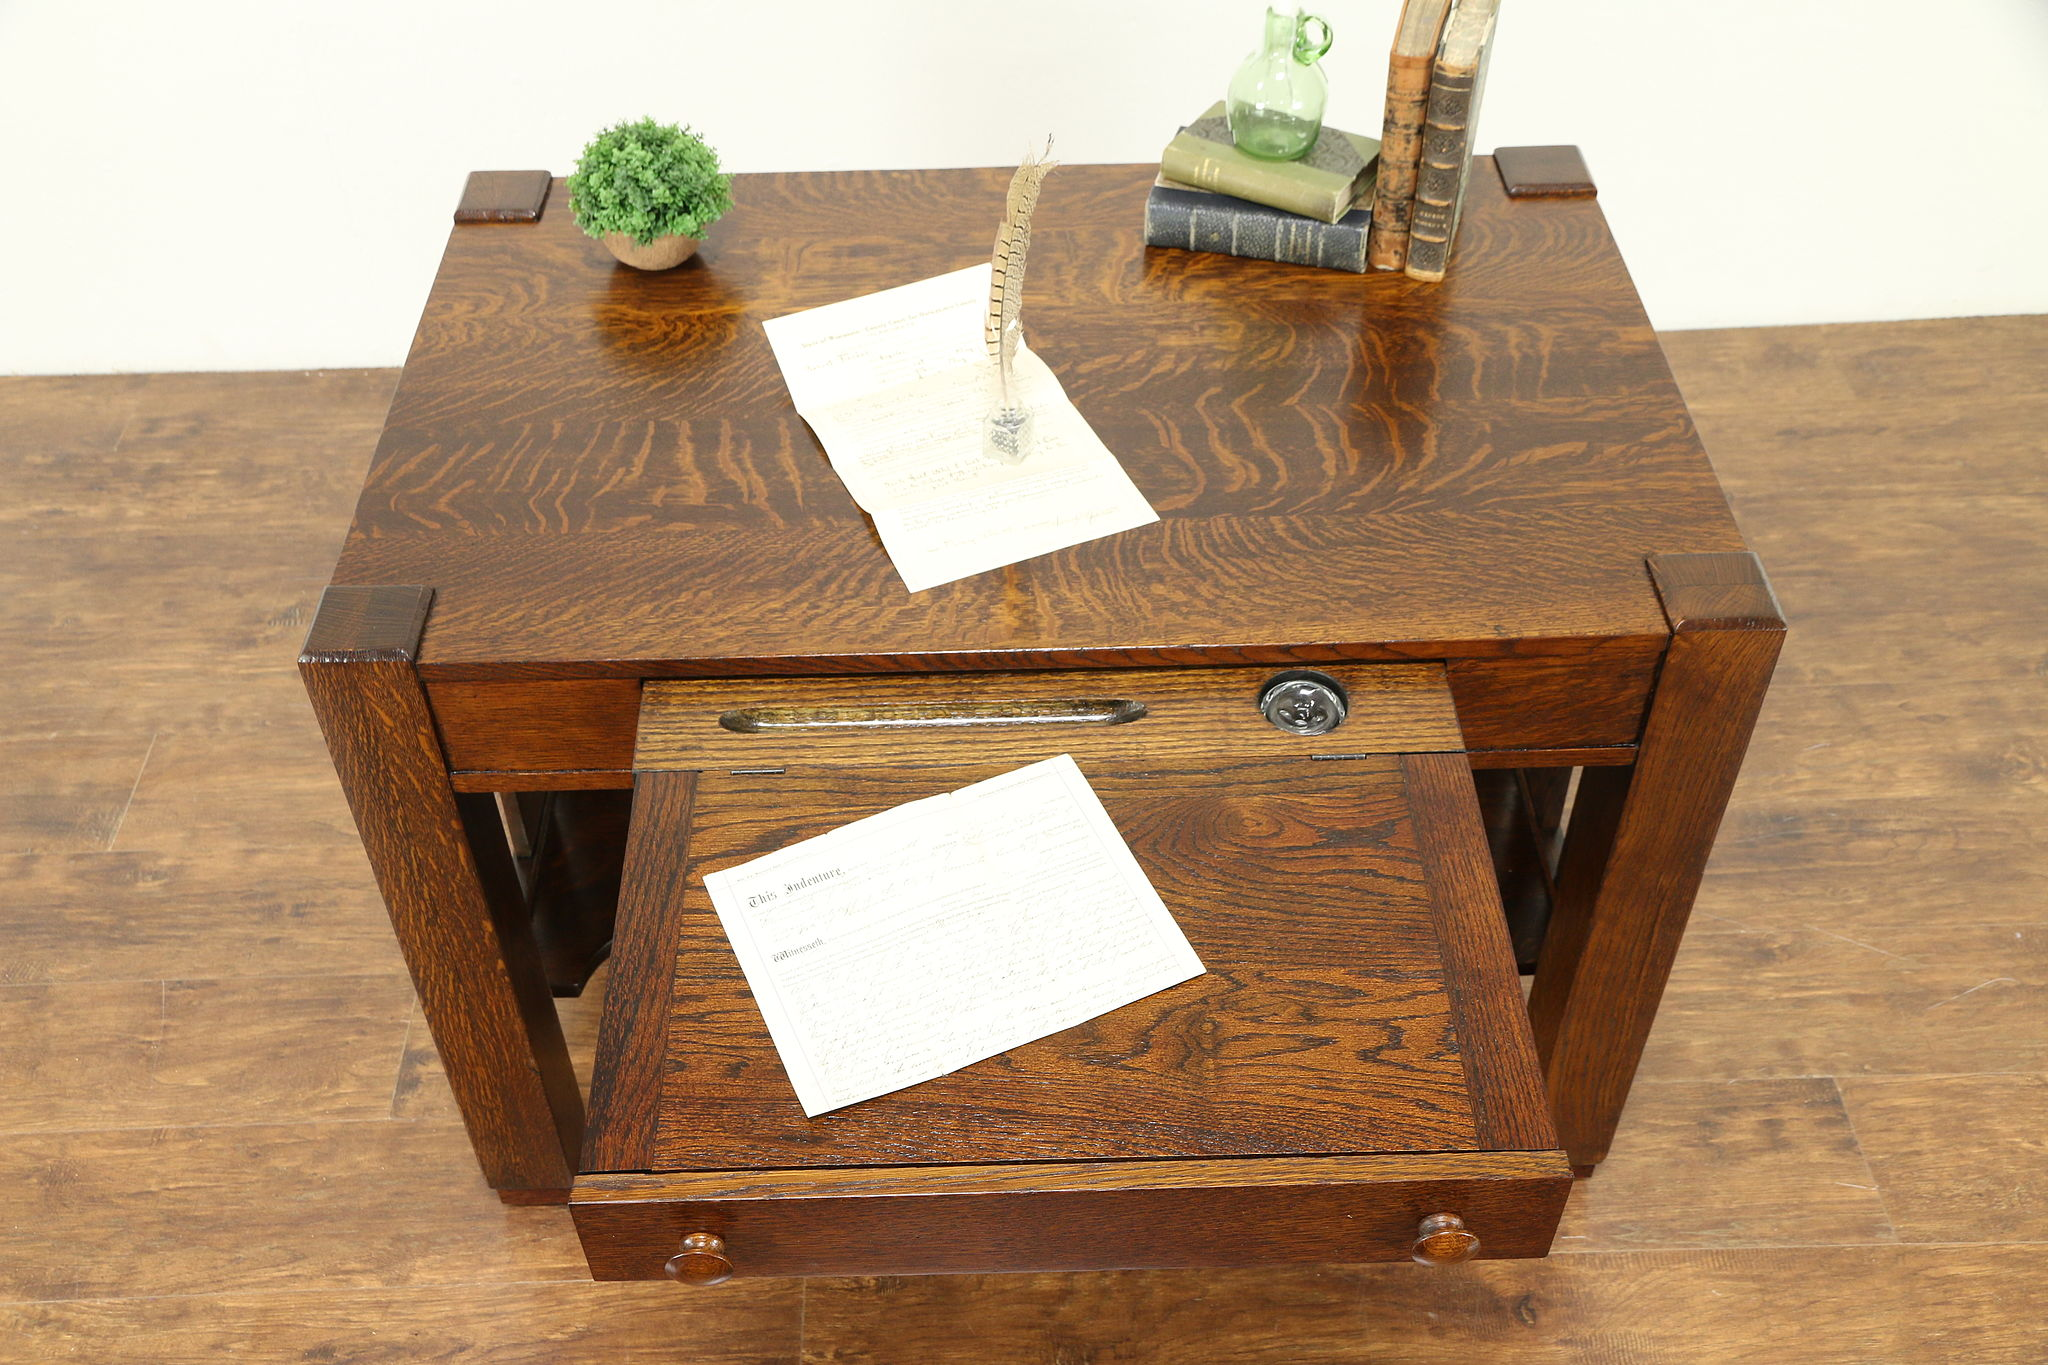 Sold Arts Crafts Mission Oak Antique Cadillac Desk Craftsman Library Table 31064 Harp Gallery Antiques Furniture